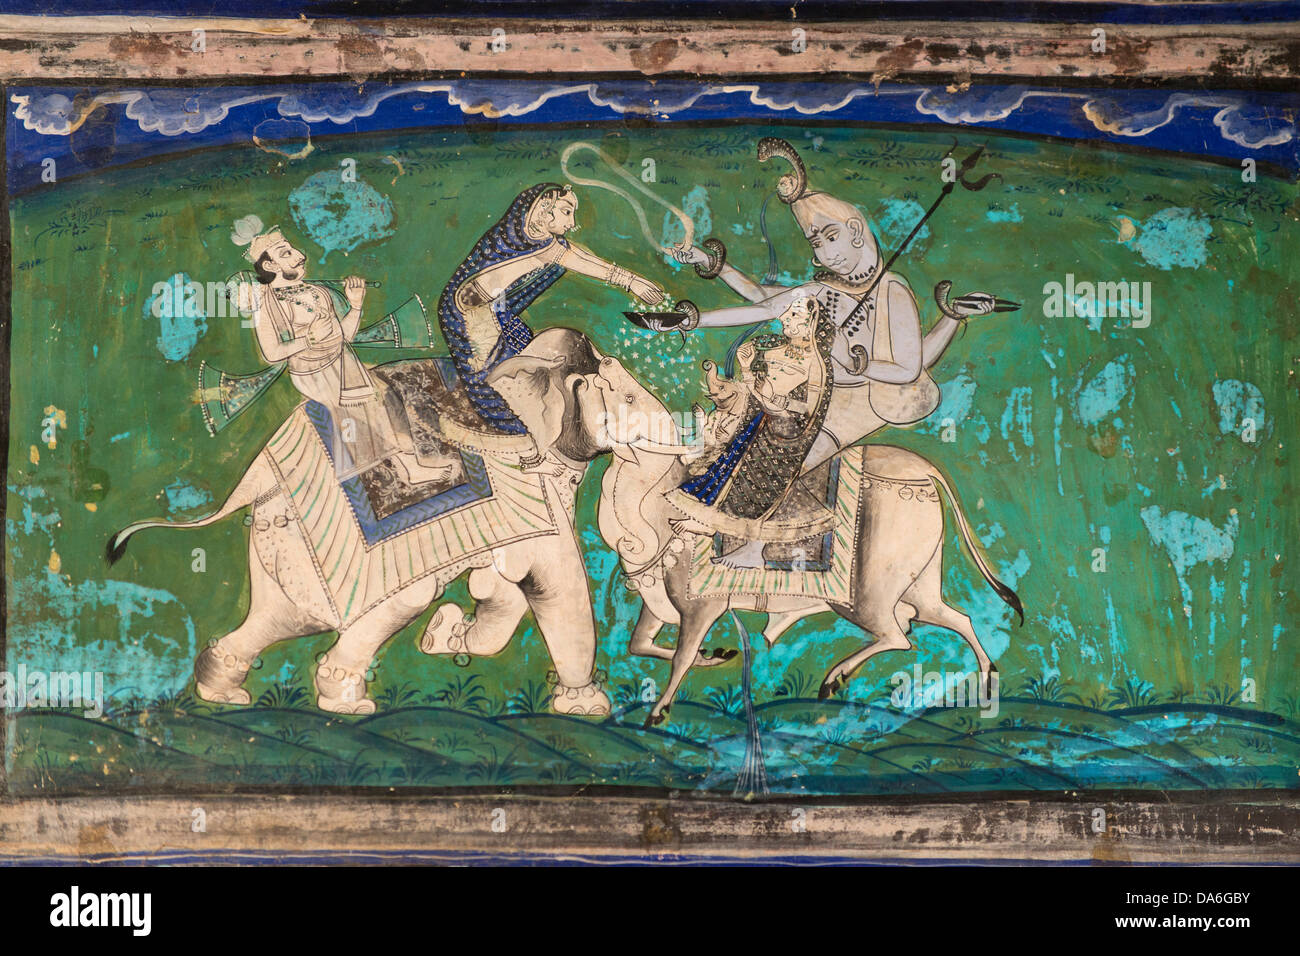 Woman on an elephant offering sacrifices to the god Shiva on Nandi, optical illusion, wall painting or fresco painted Stock Photo